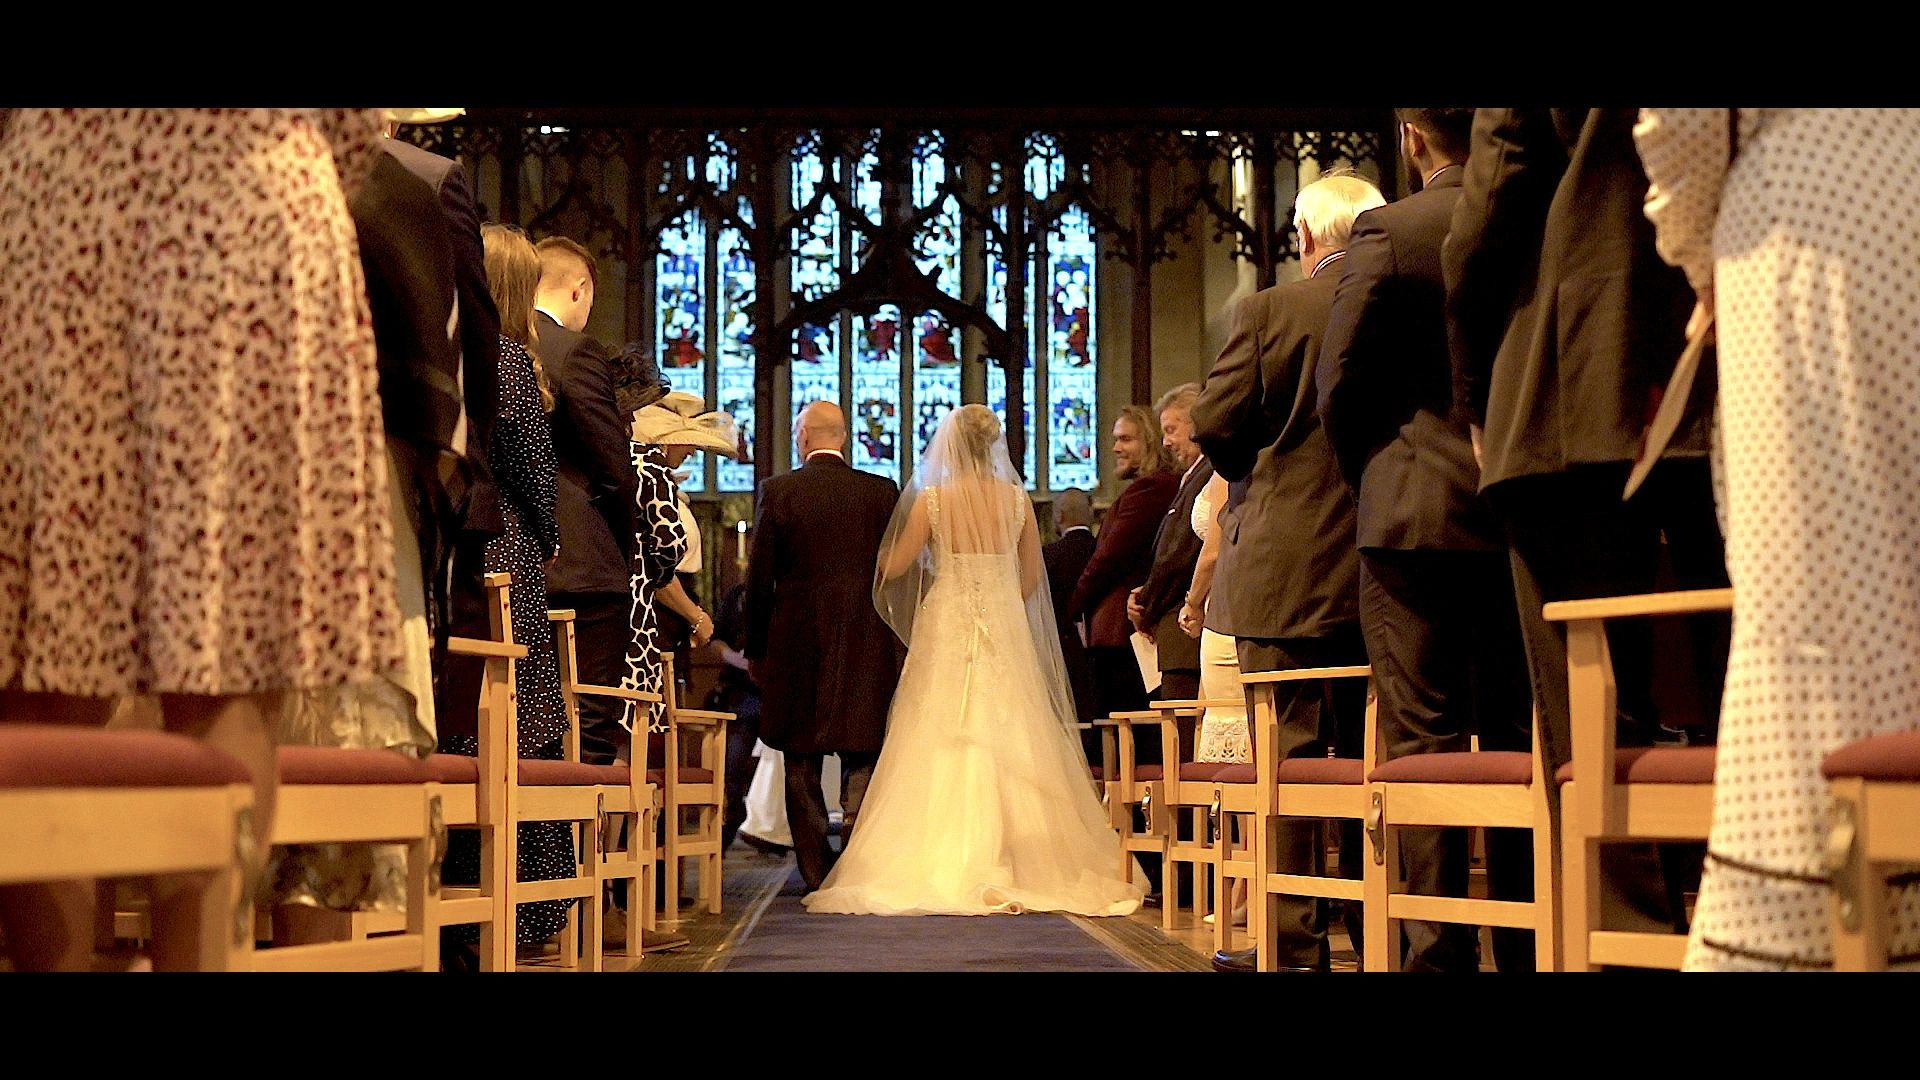 Severn Scent Wedding Videos  Videography across Shropshire and the Midlands in 2020 and 2021